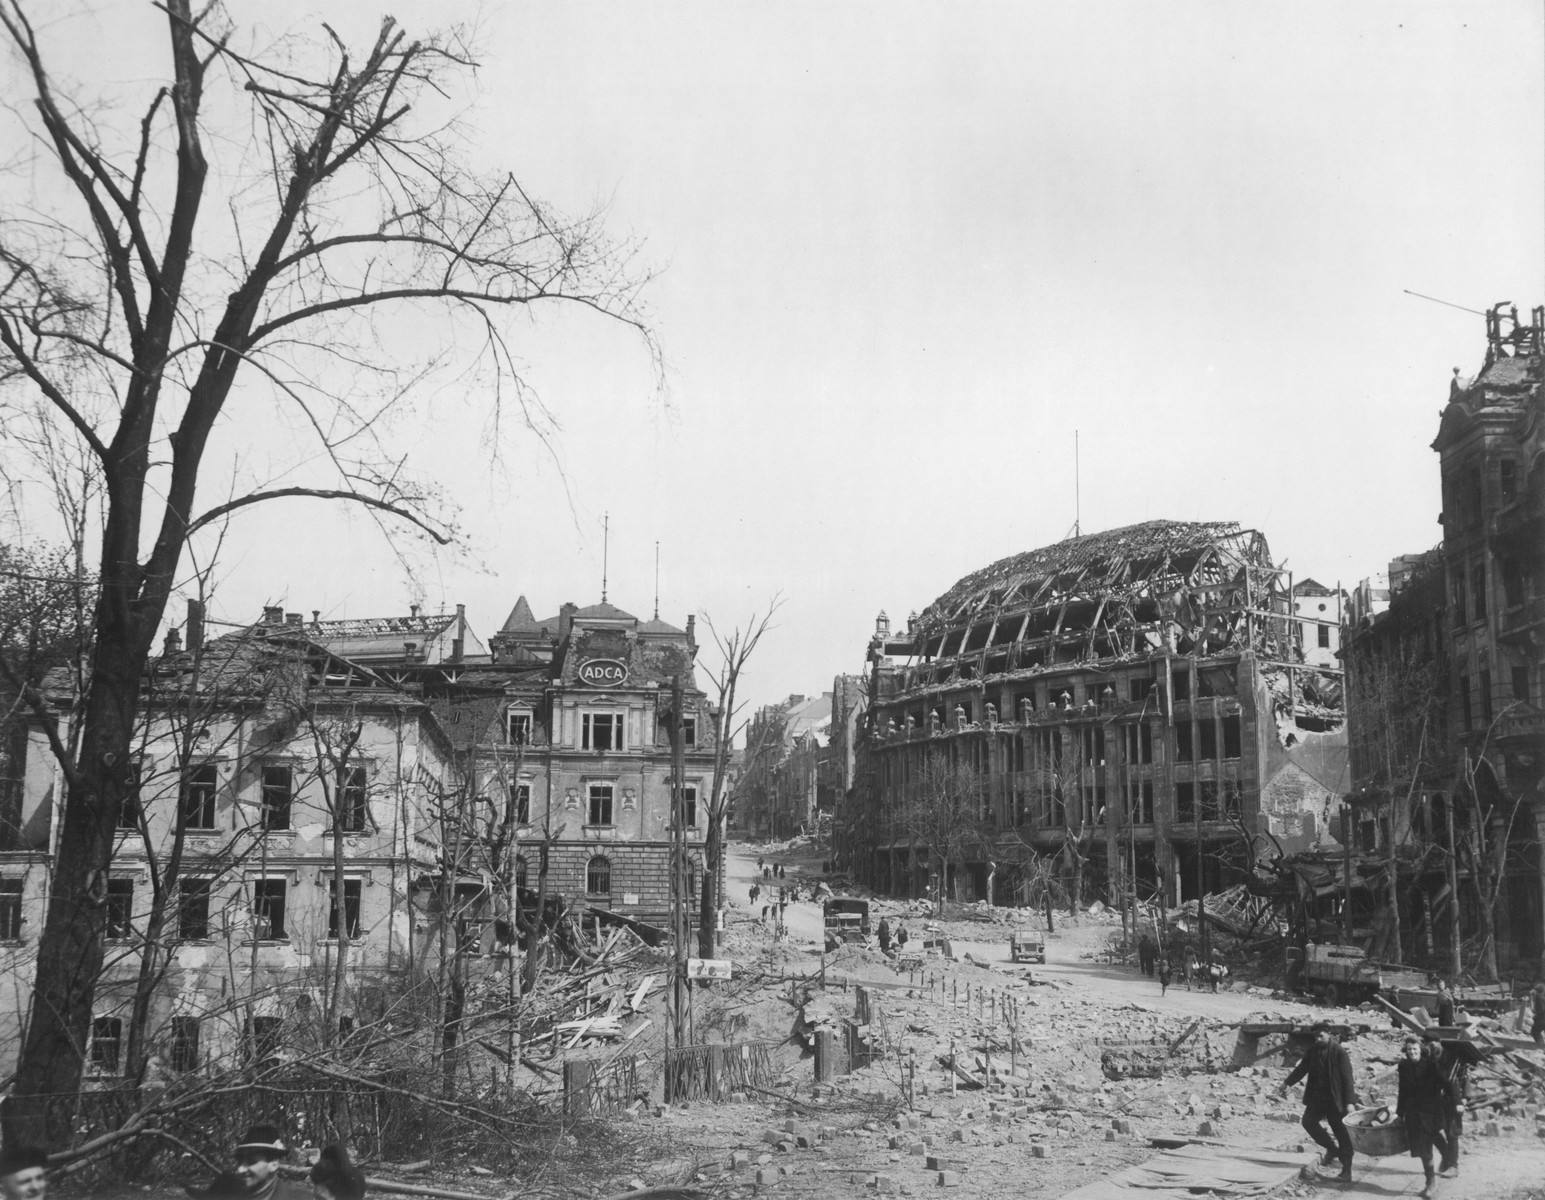 View of destroyed buildings on a city street in Germany at the end of World War II.